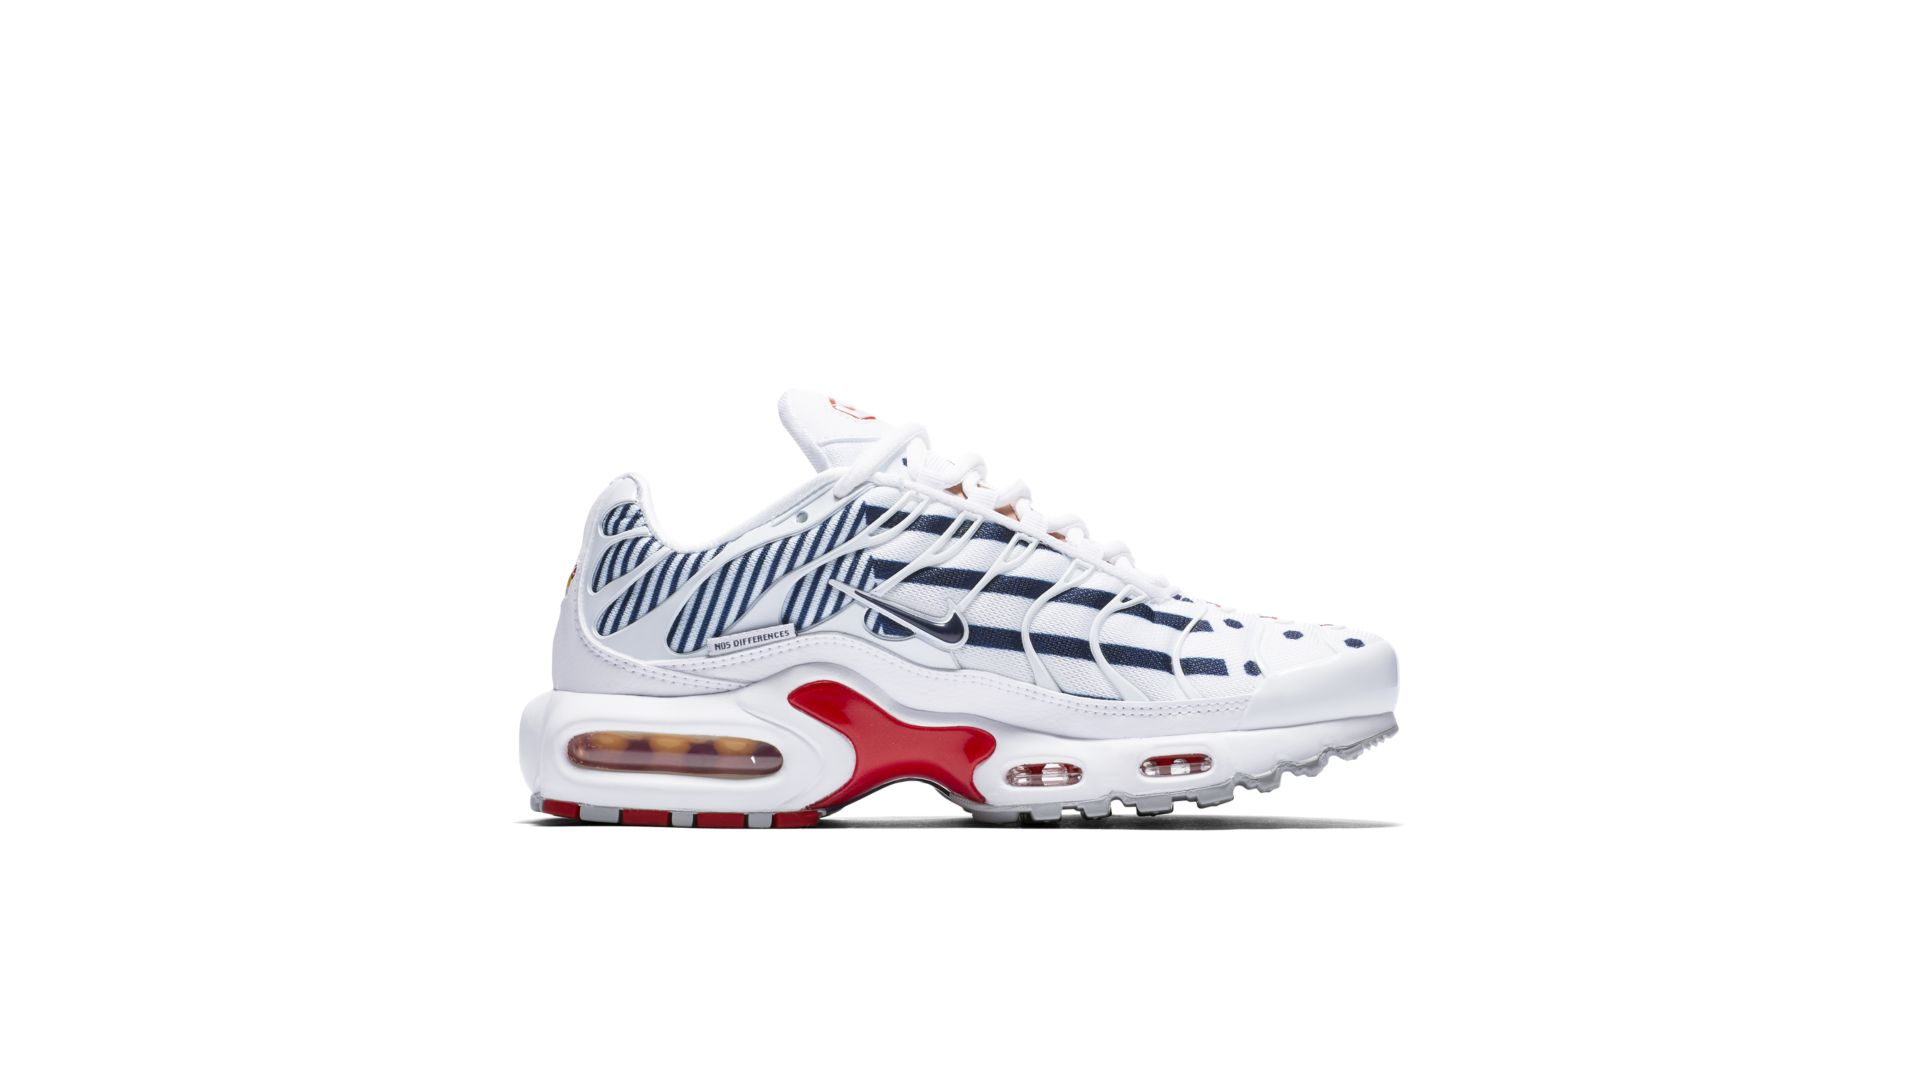 Nike Wmns Air Max Plus TN 'Unité Totale' (CI9103-100)